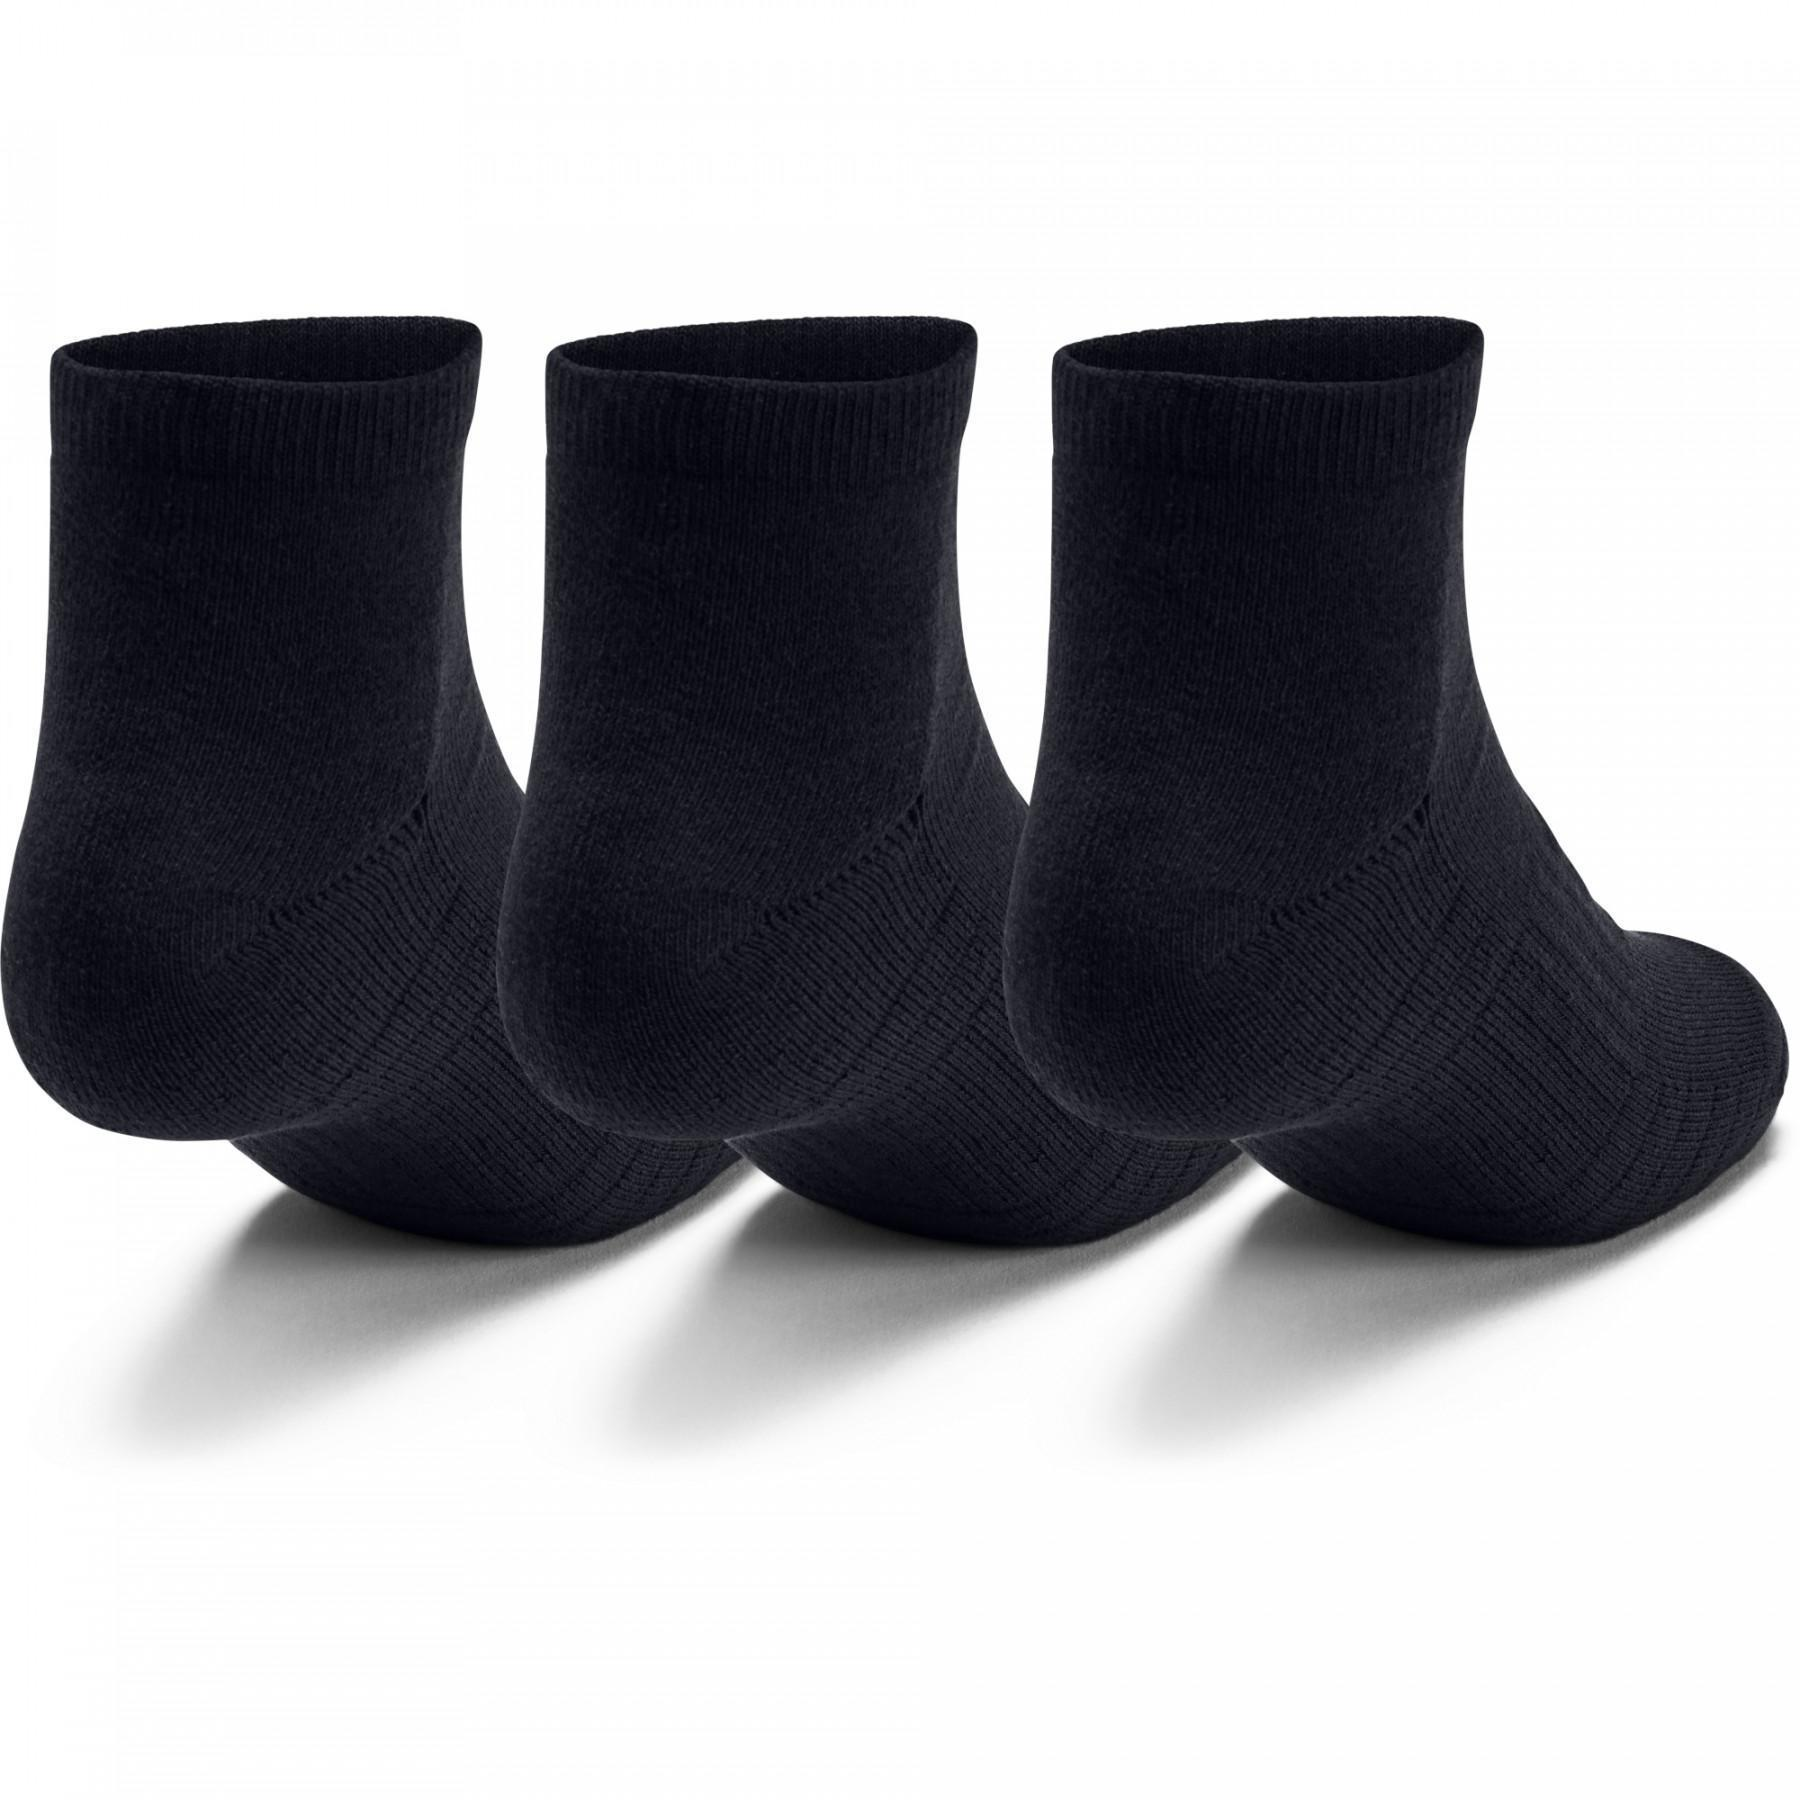 Pack of 3 pairs of low socks Under Armour Training Coton